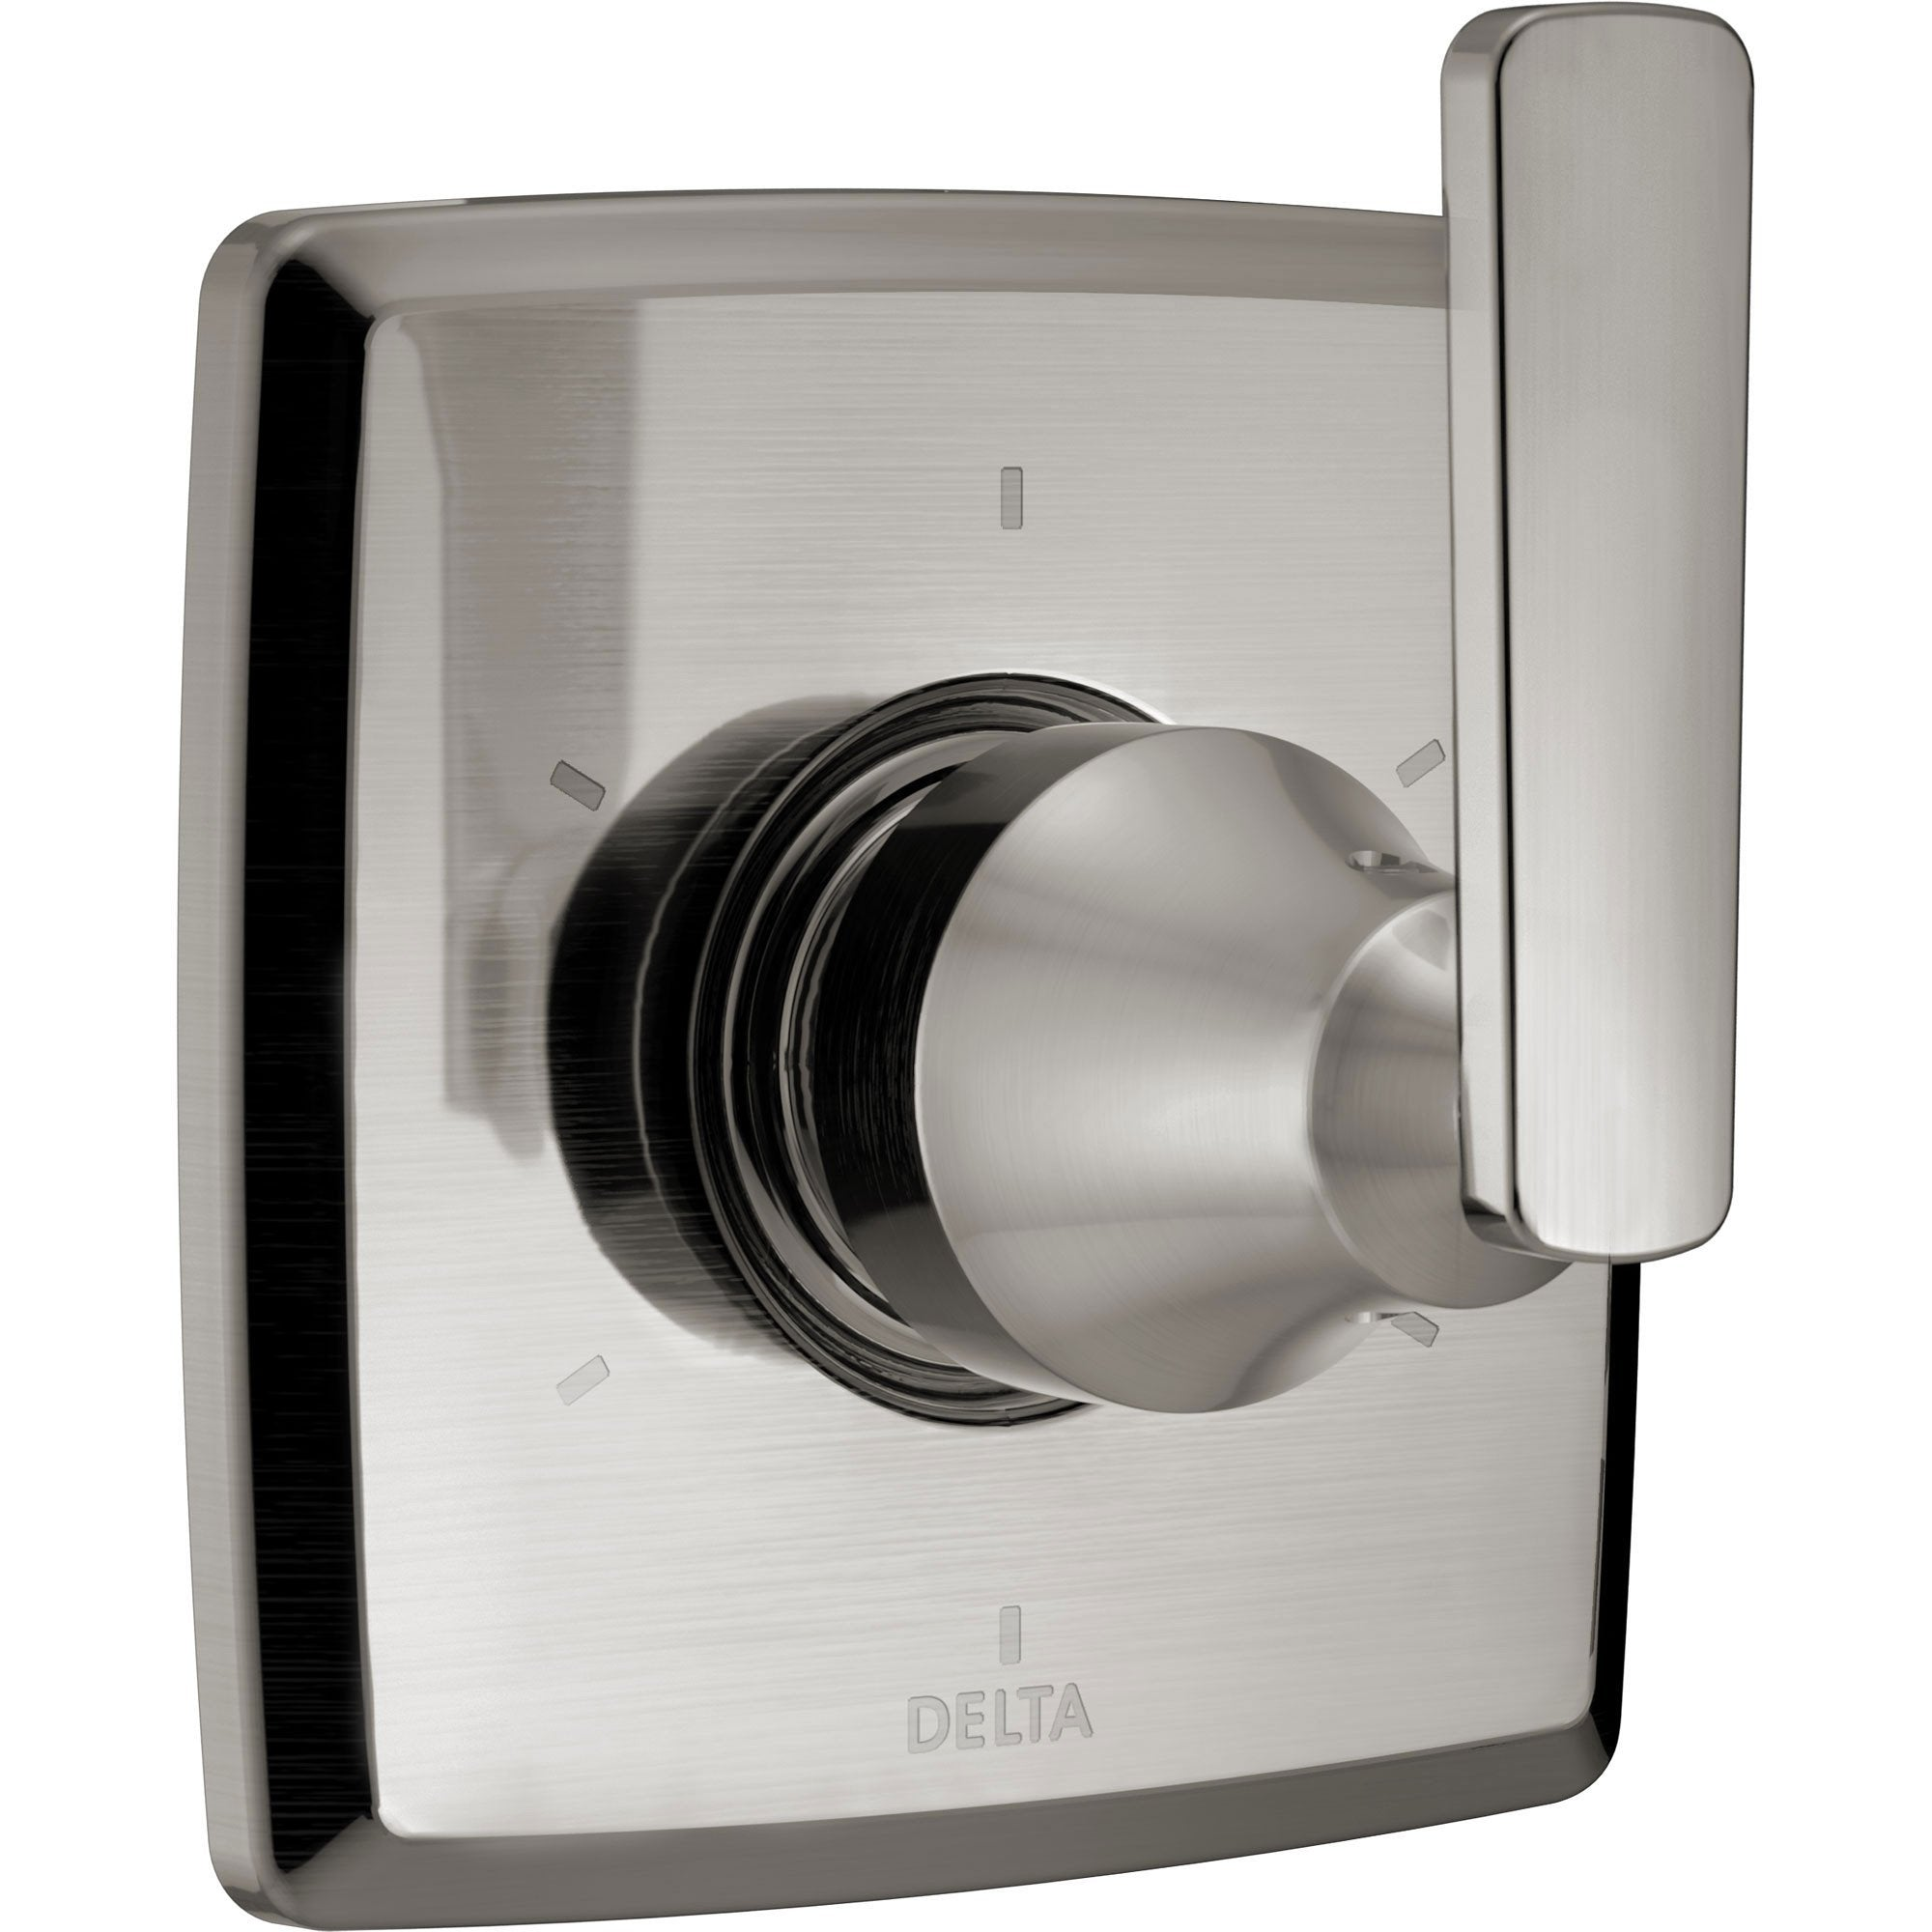 Delta Ashlyn Modern Stainless Steel Finish Single Handle 6-Setting 3-Port Shower Diverter Fixture INCLUDES Rough-in Valve D1288V